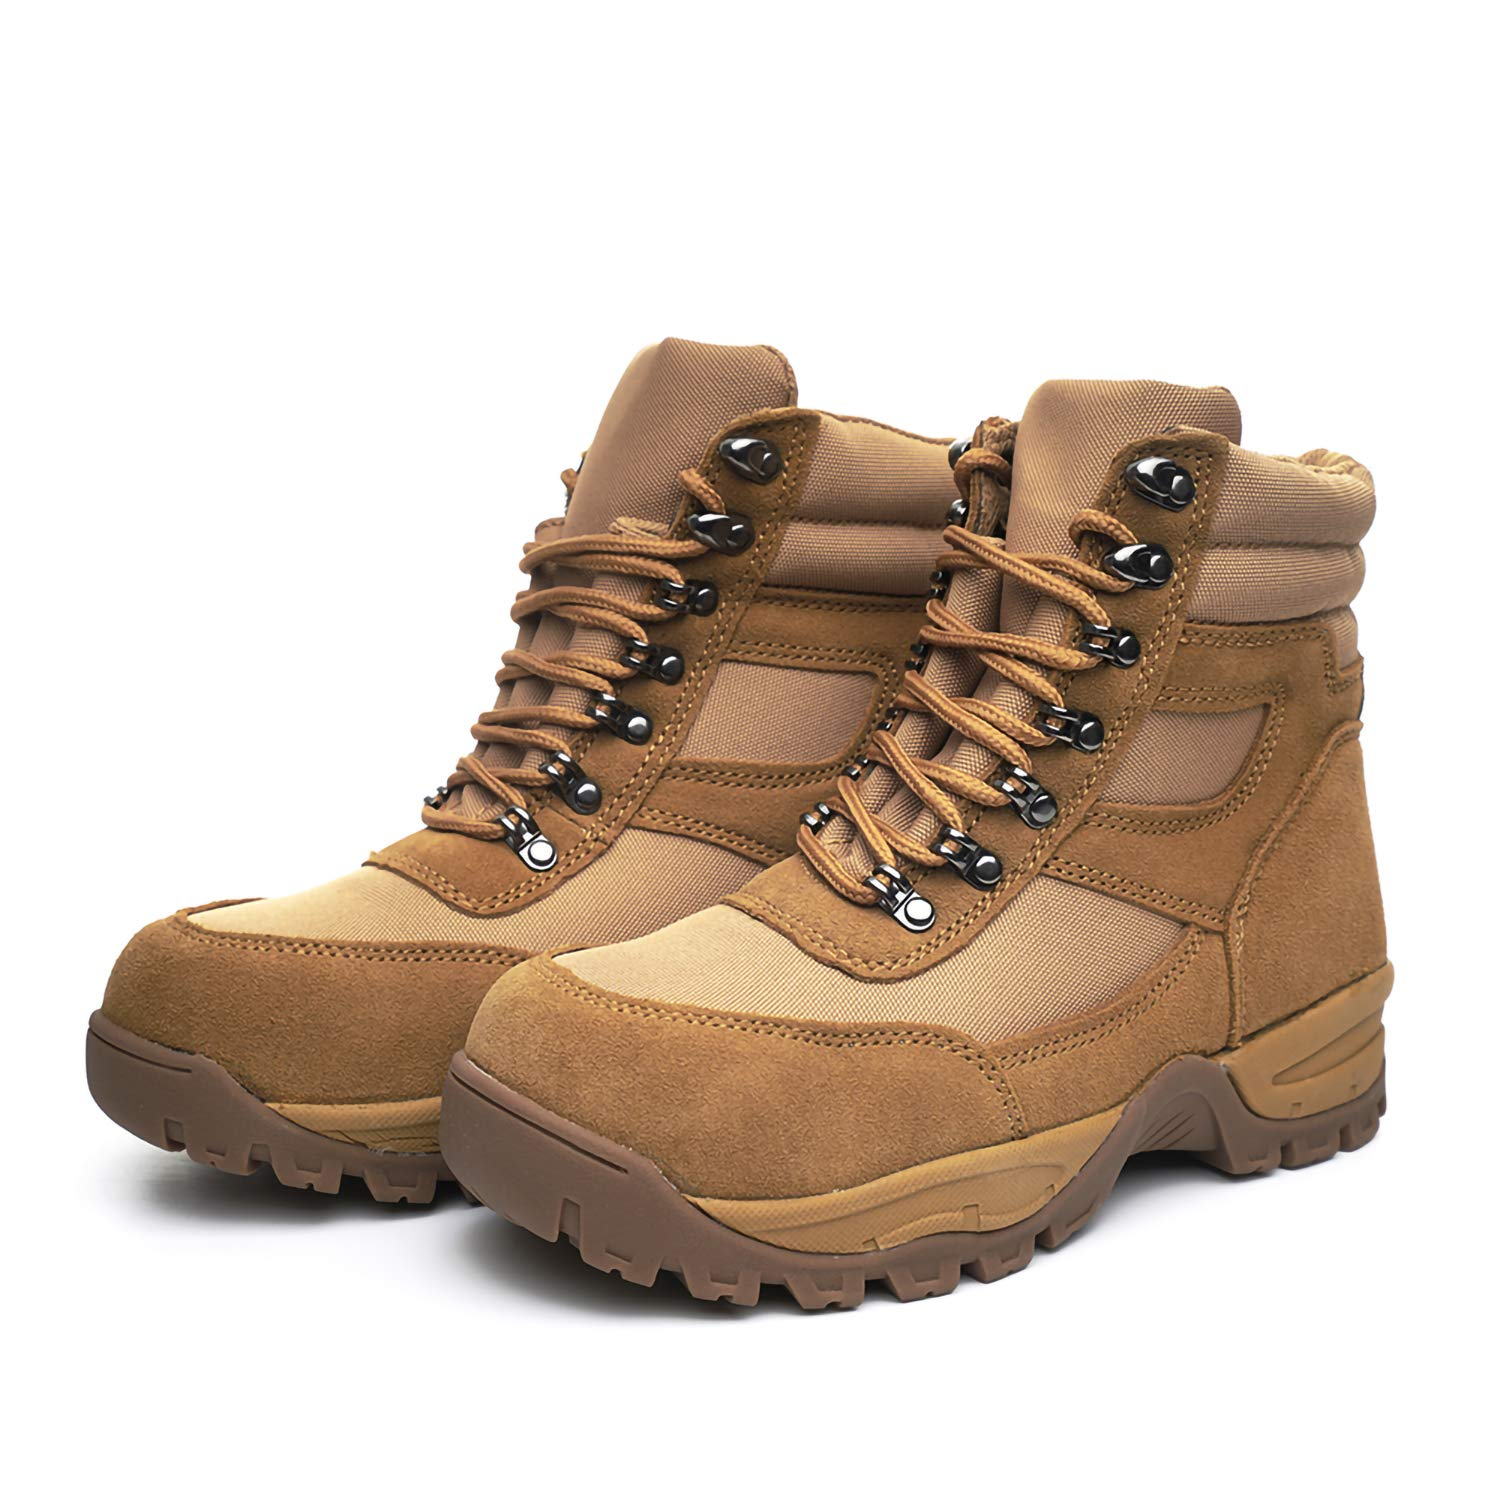 "DRKA Men's 6"" Steel Toe Work Boots,Water Resistant Military Tactical Boots"